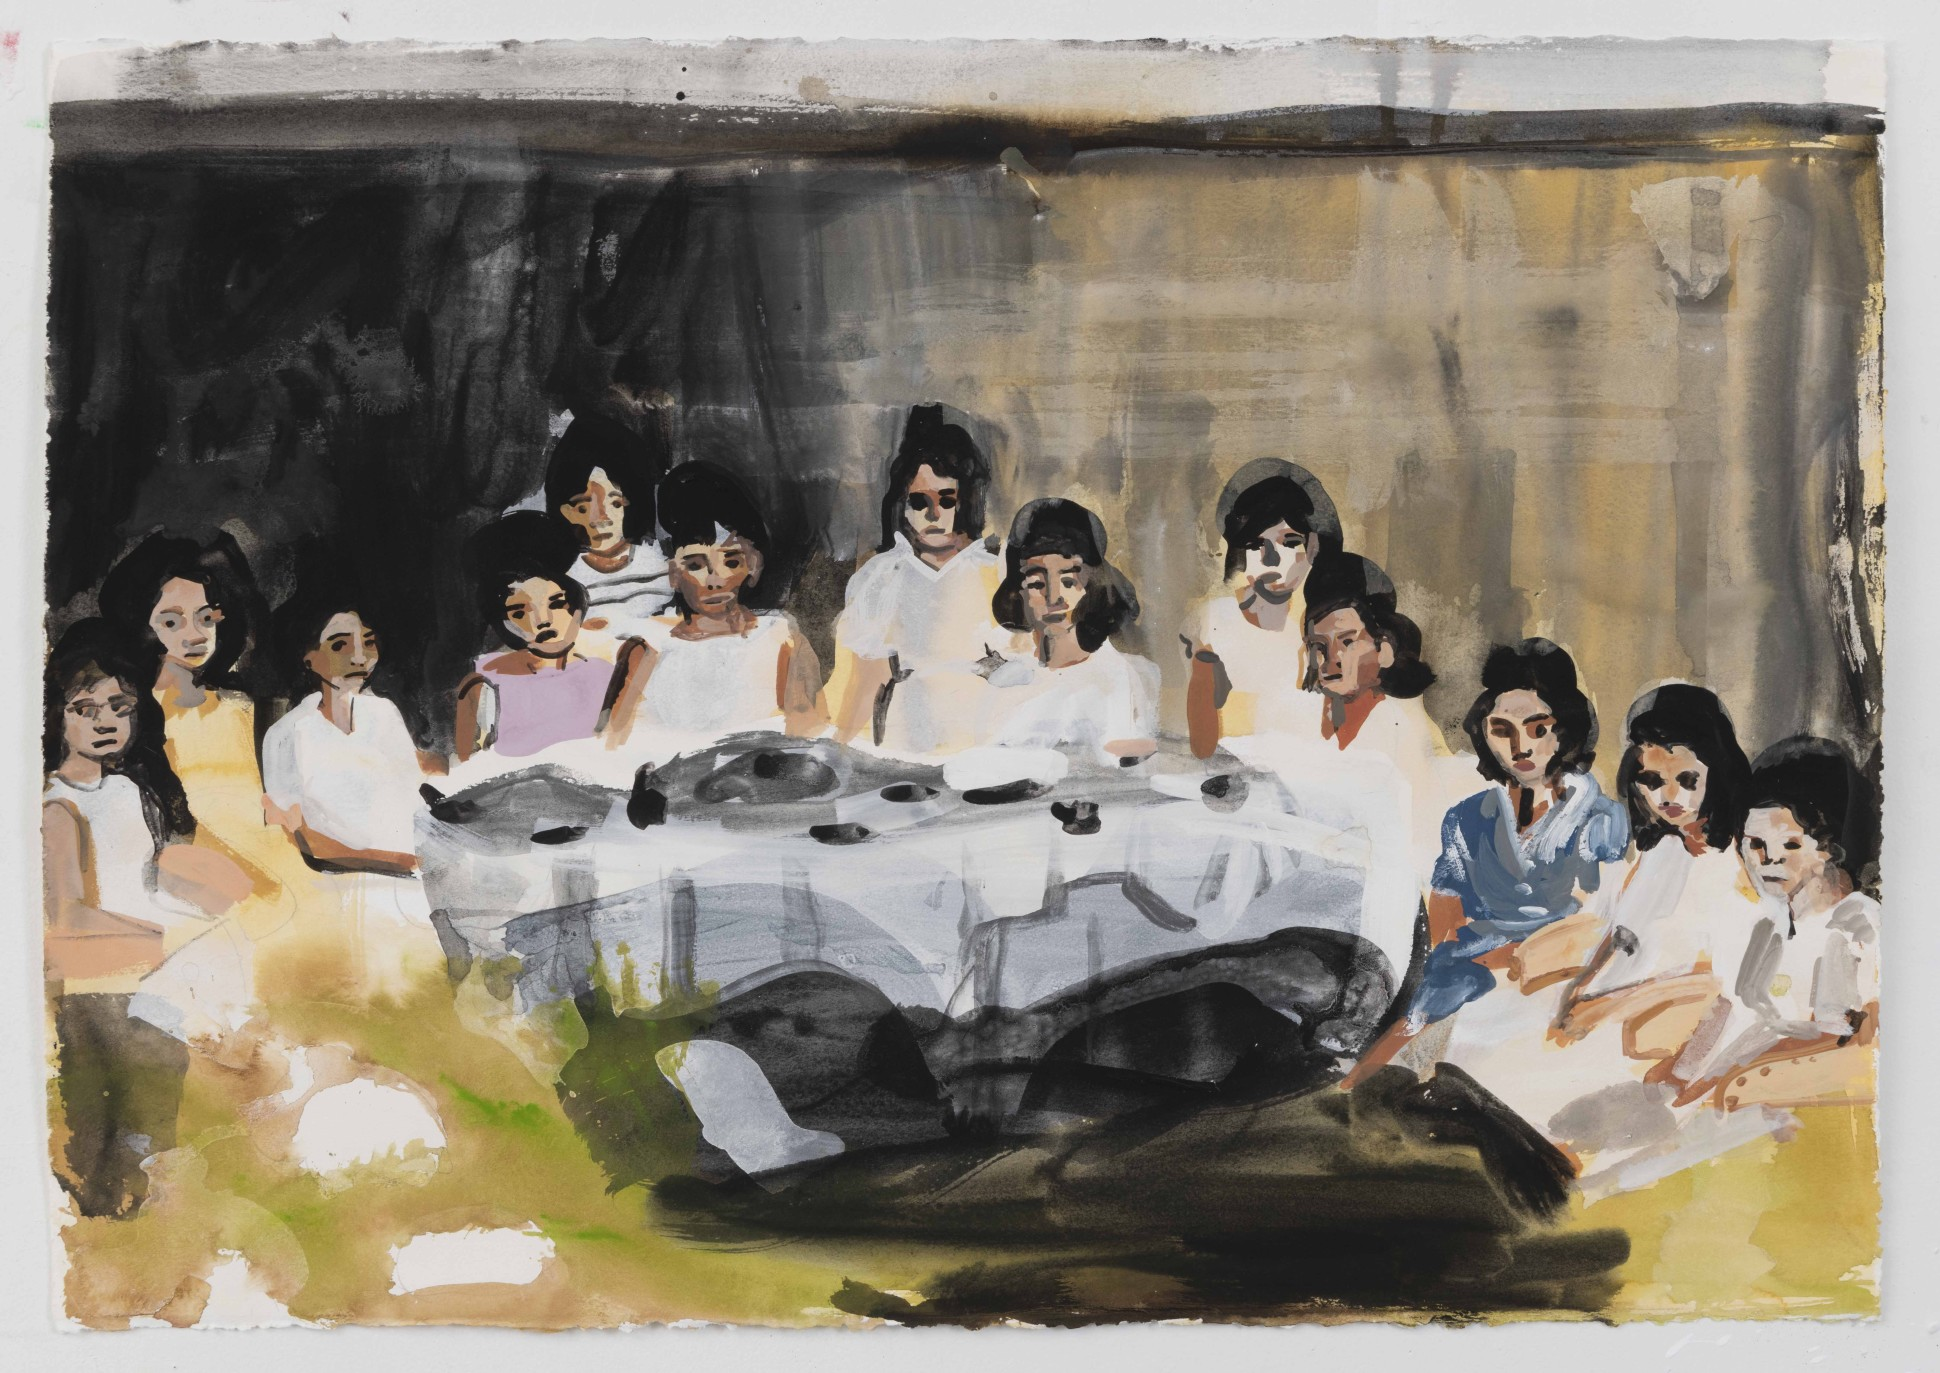 Maia Cruz Palileo Goodbye Party, 2016 Ink and gouache on paper 55.9 x 76.2 cm. / 22 x 30 in. Courtesy Monique Meloche and copyright of the artist